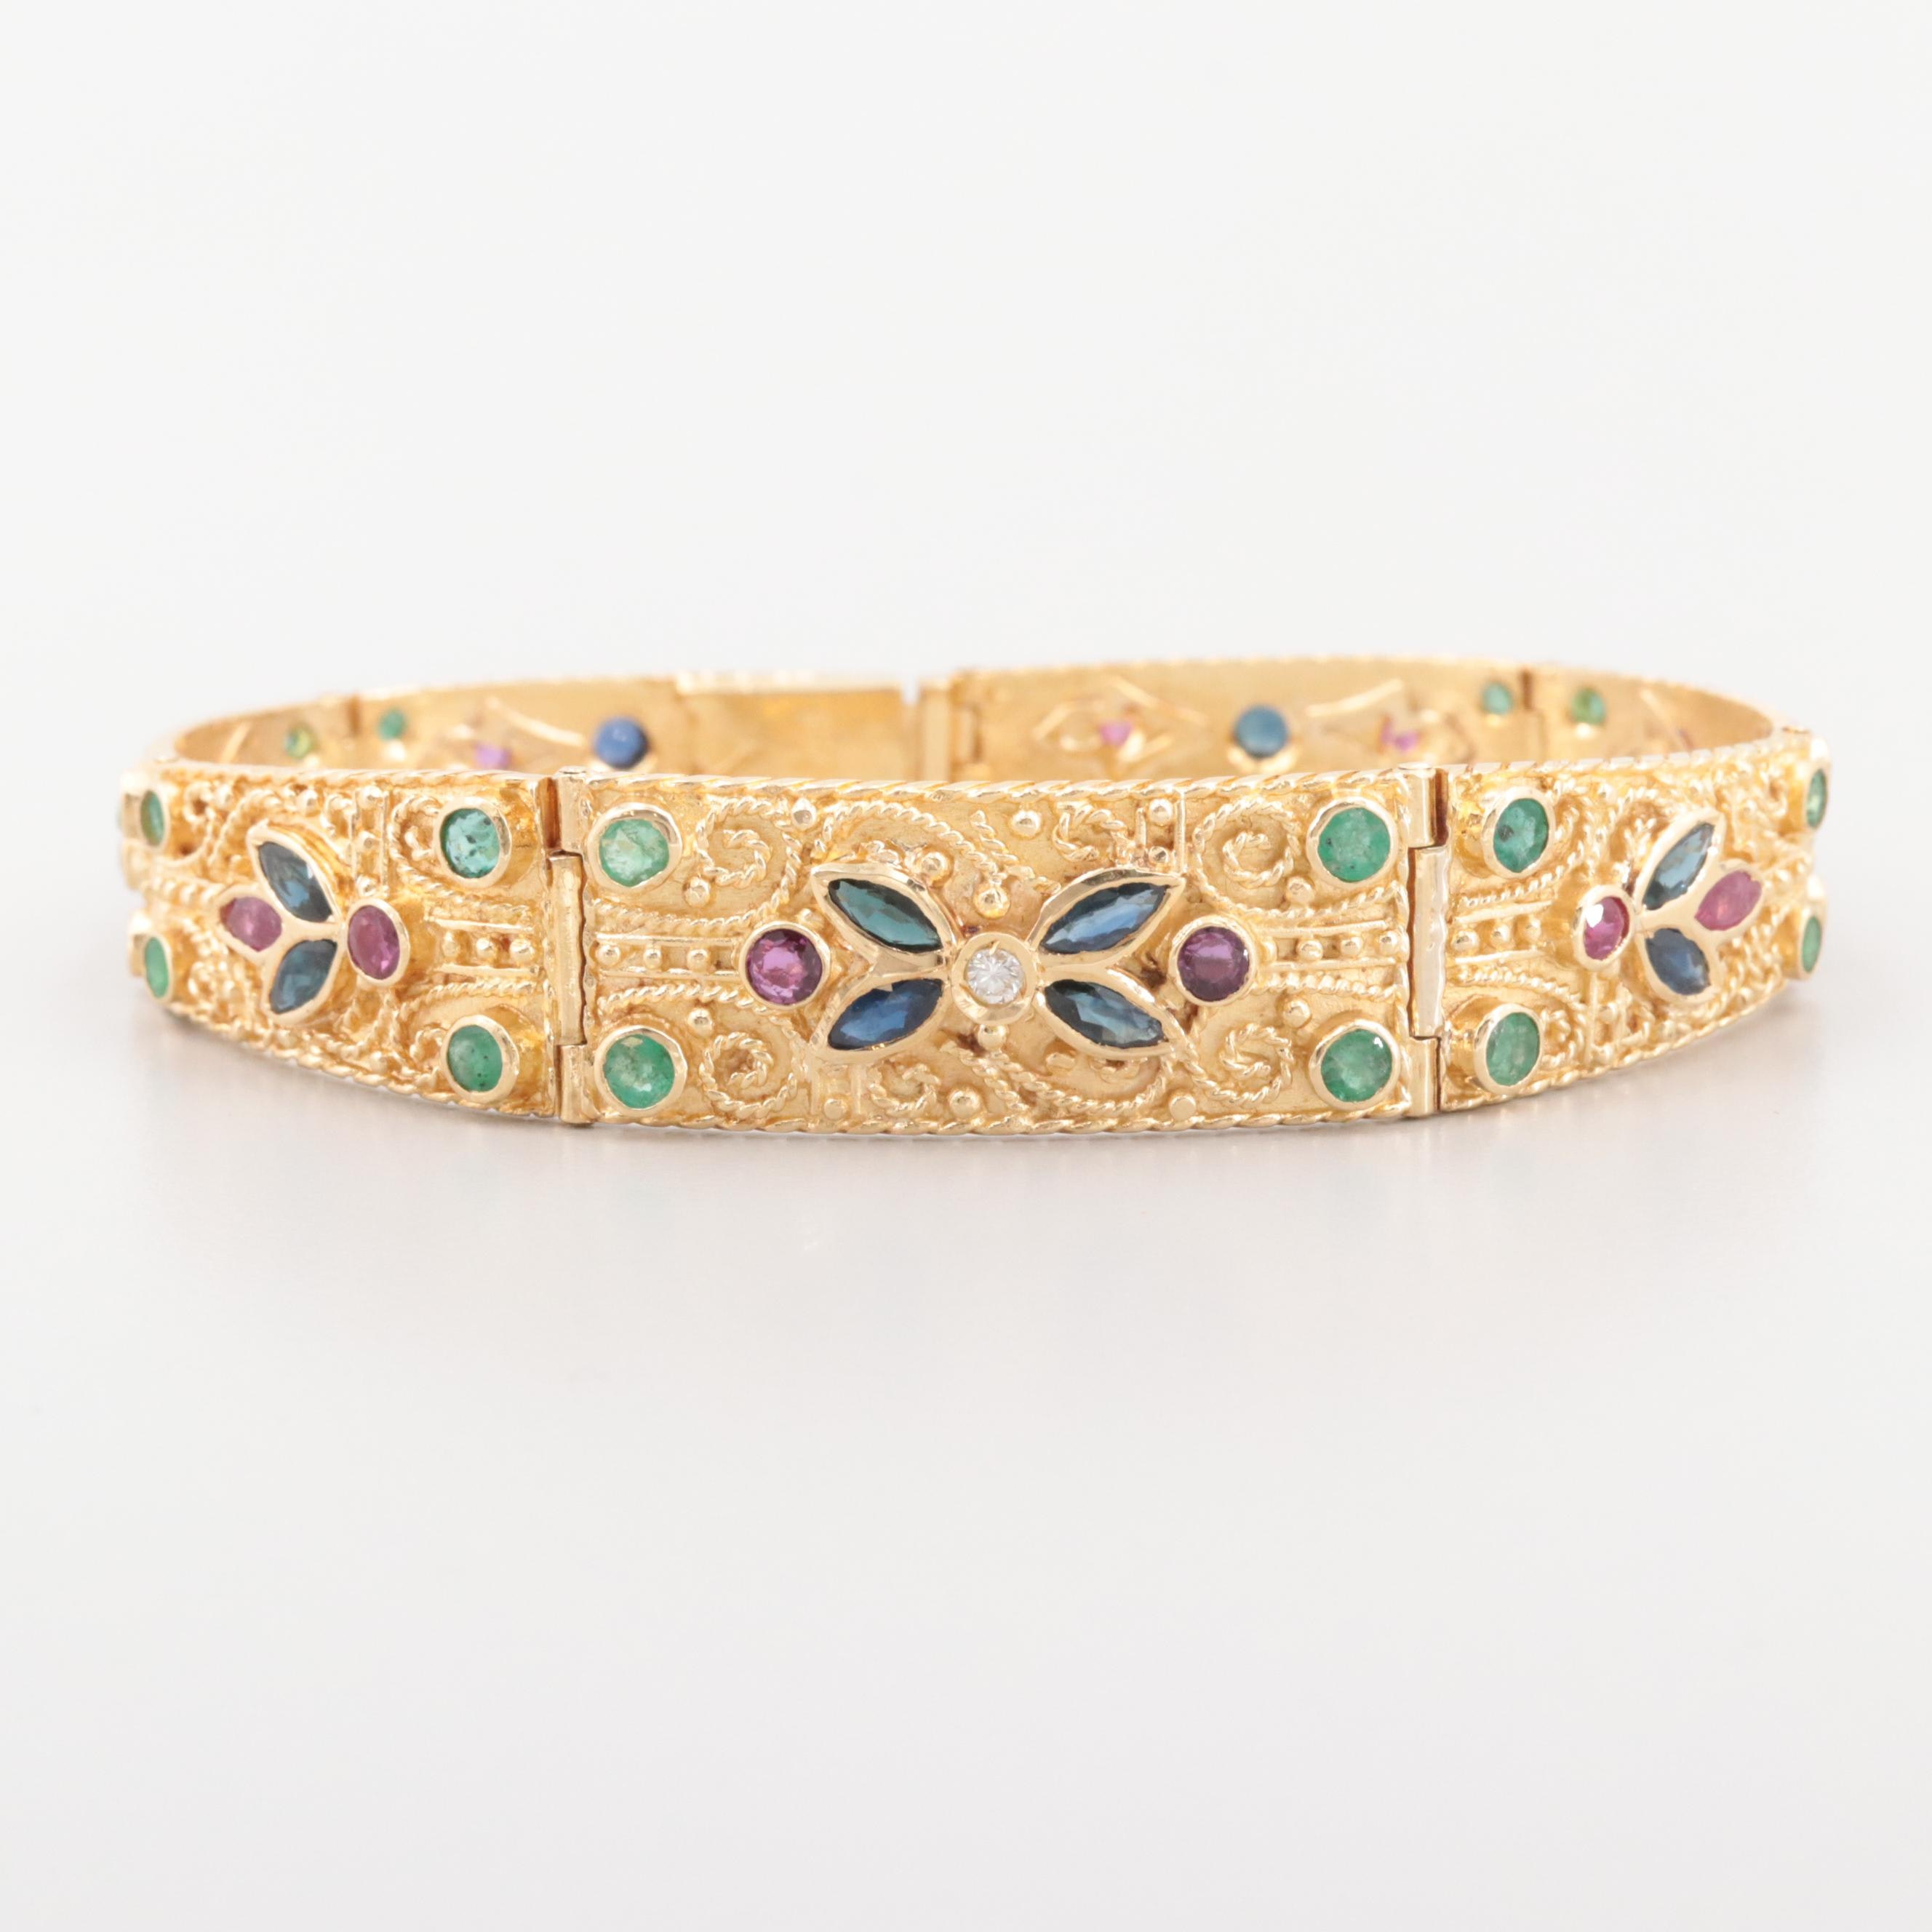 18K Yellow Gold Bracelet with Diamond, Blue Sapphire, Ruby and Emerald Stones